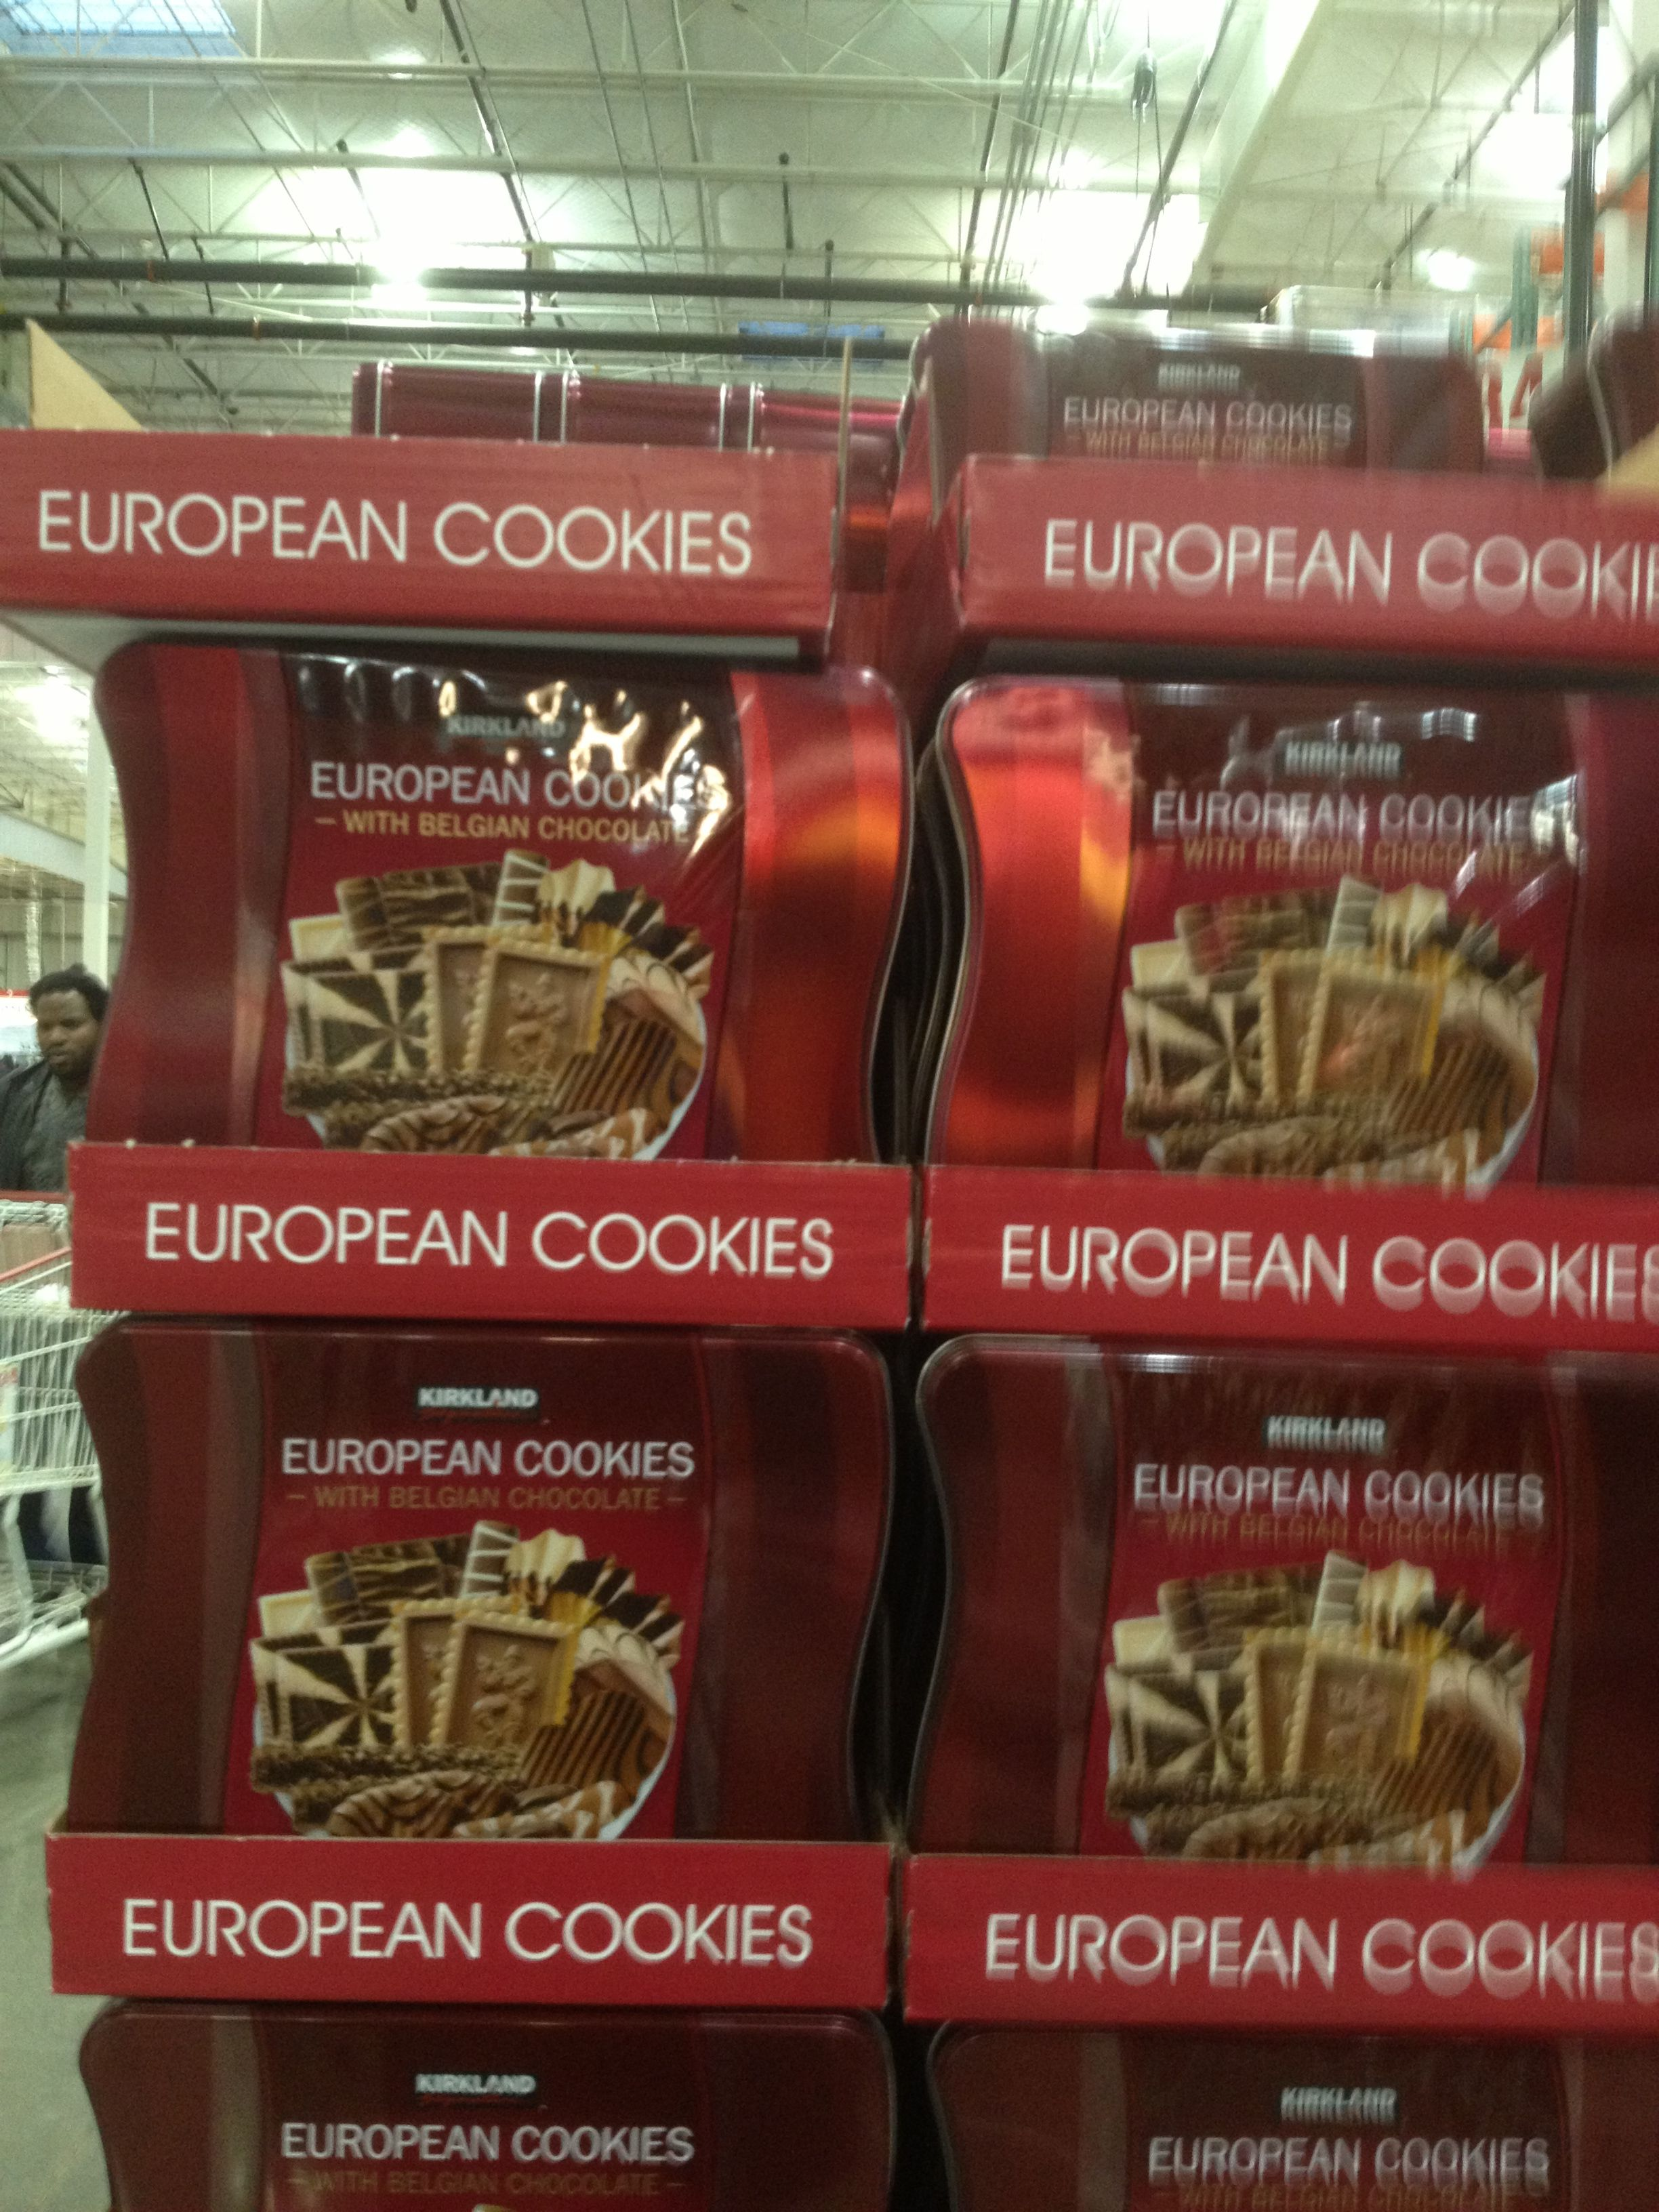 costco mini cheese cakes 12 99 for 54 one inch squares baby assorted european cookies costco 11 99